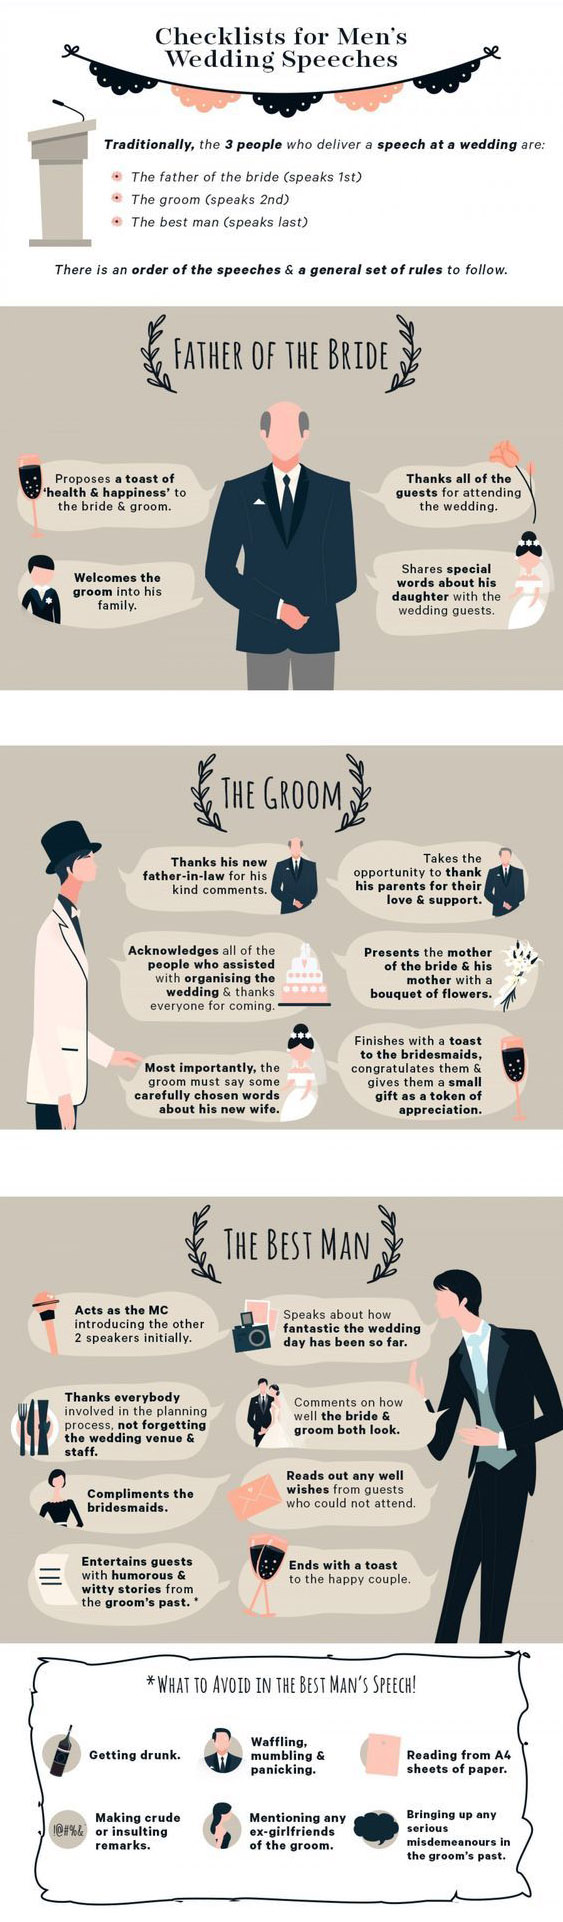 Checklist for Men's Wedding Speeches